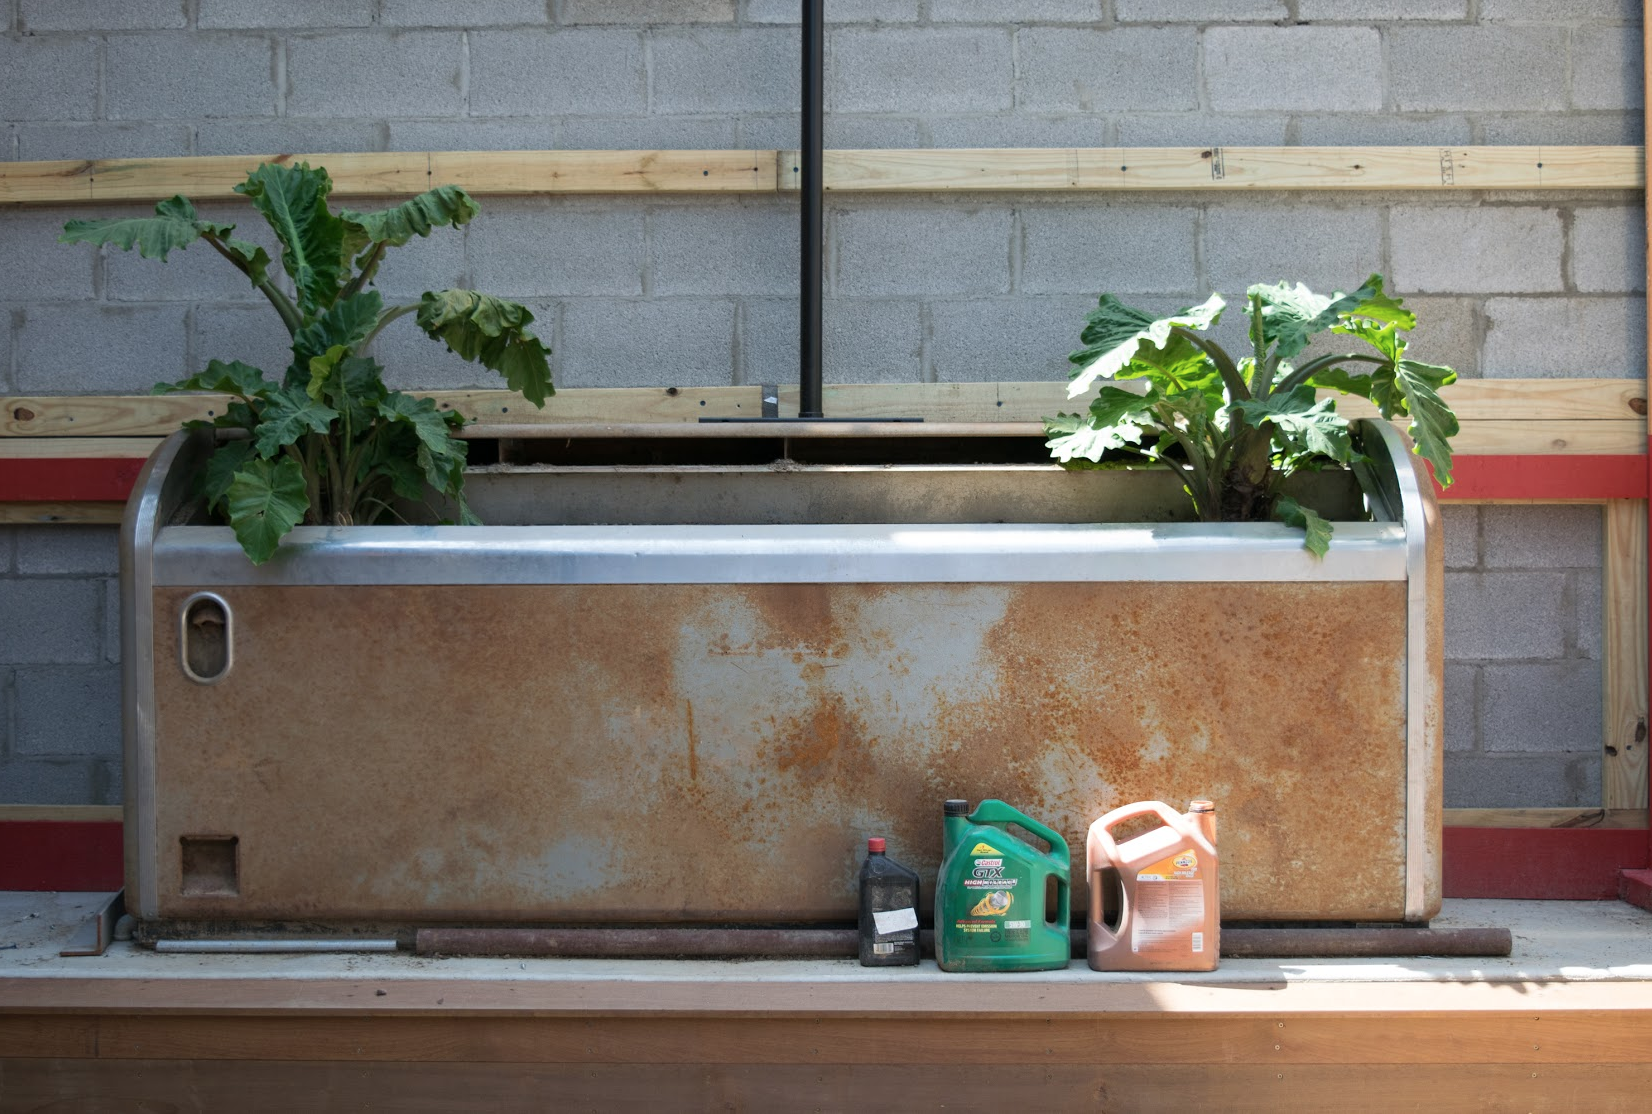 Even old drink coolers can be turned into planters!